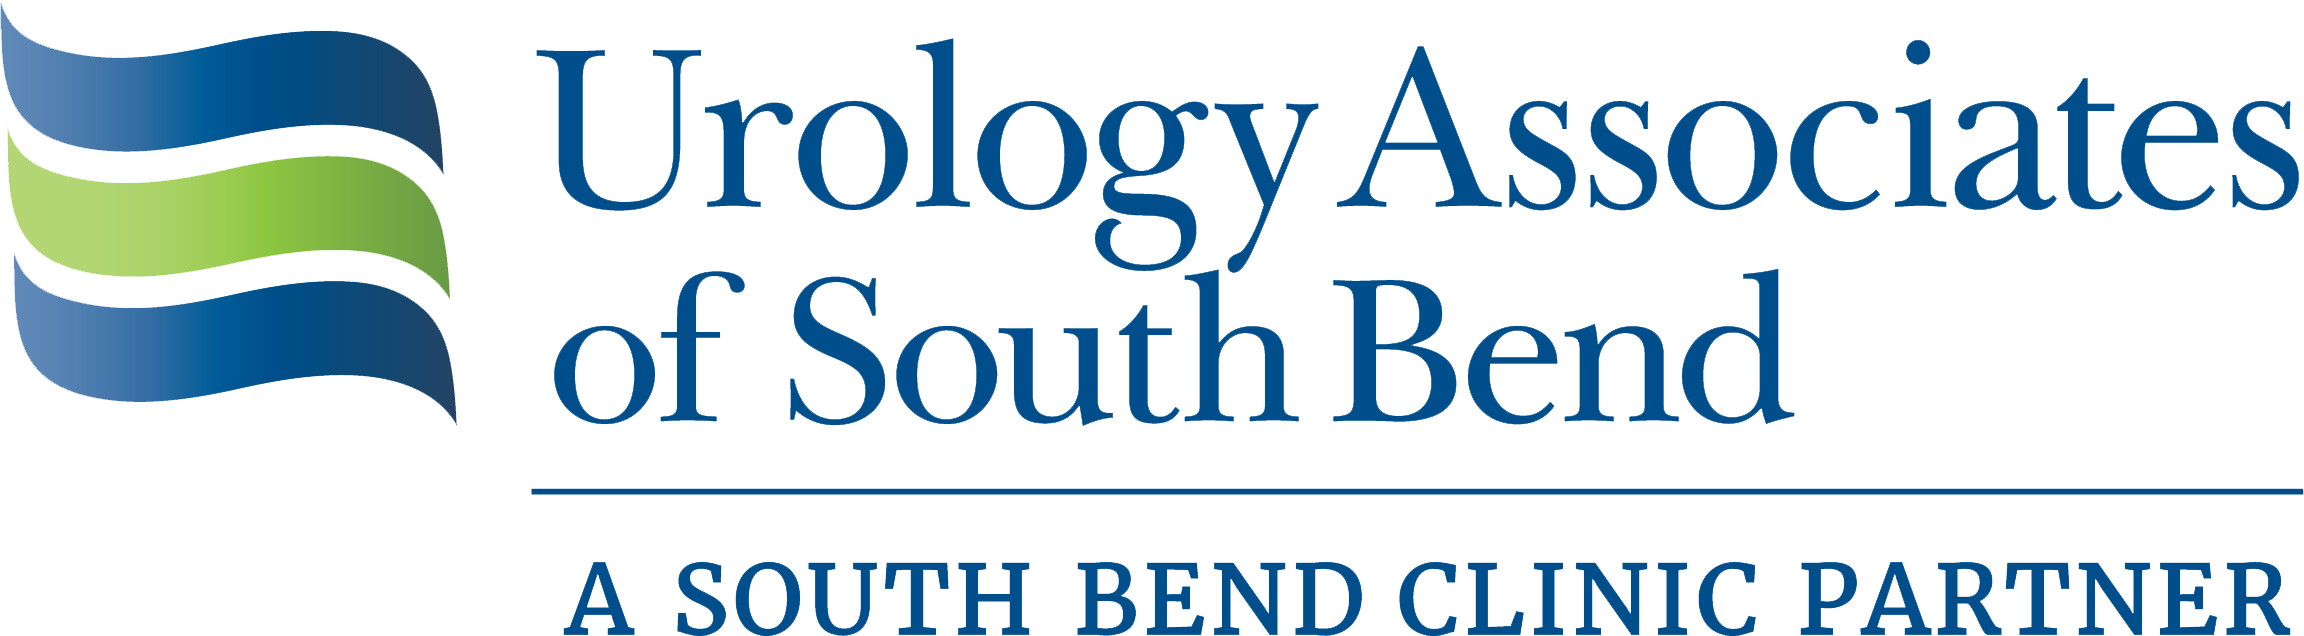 urology associates of South Bend